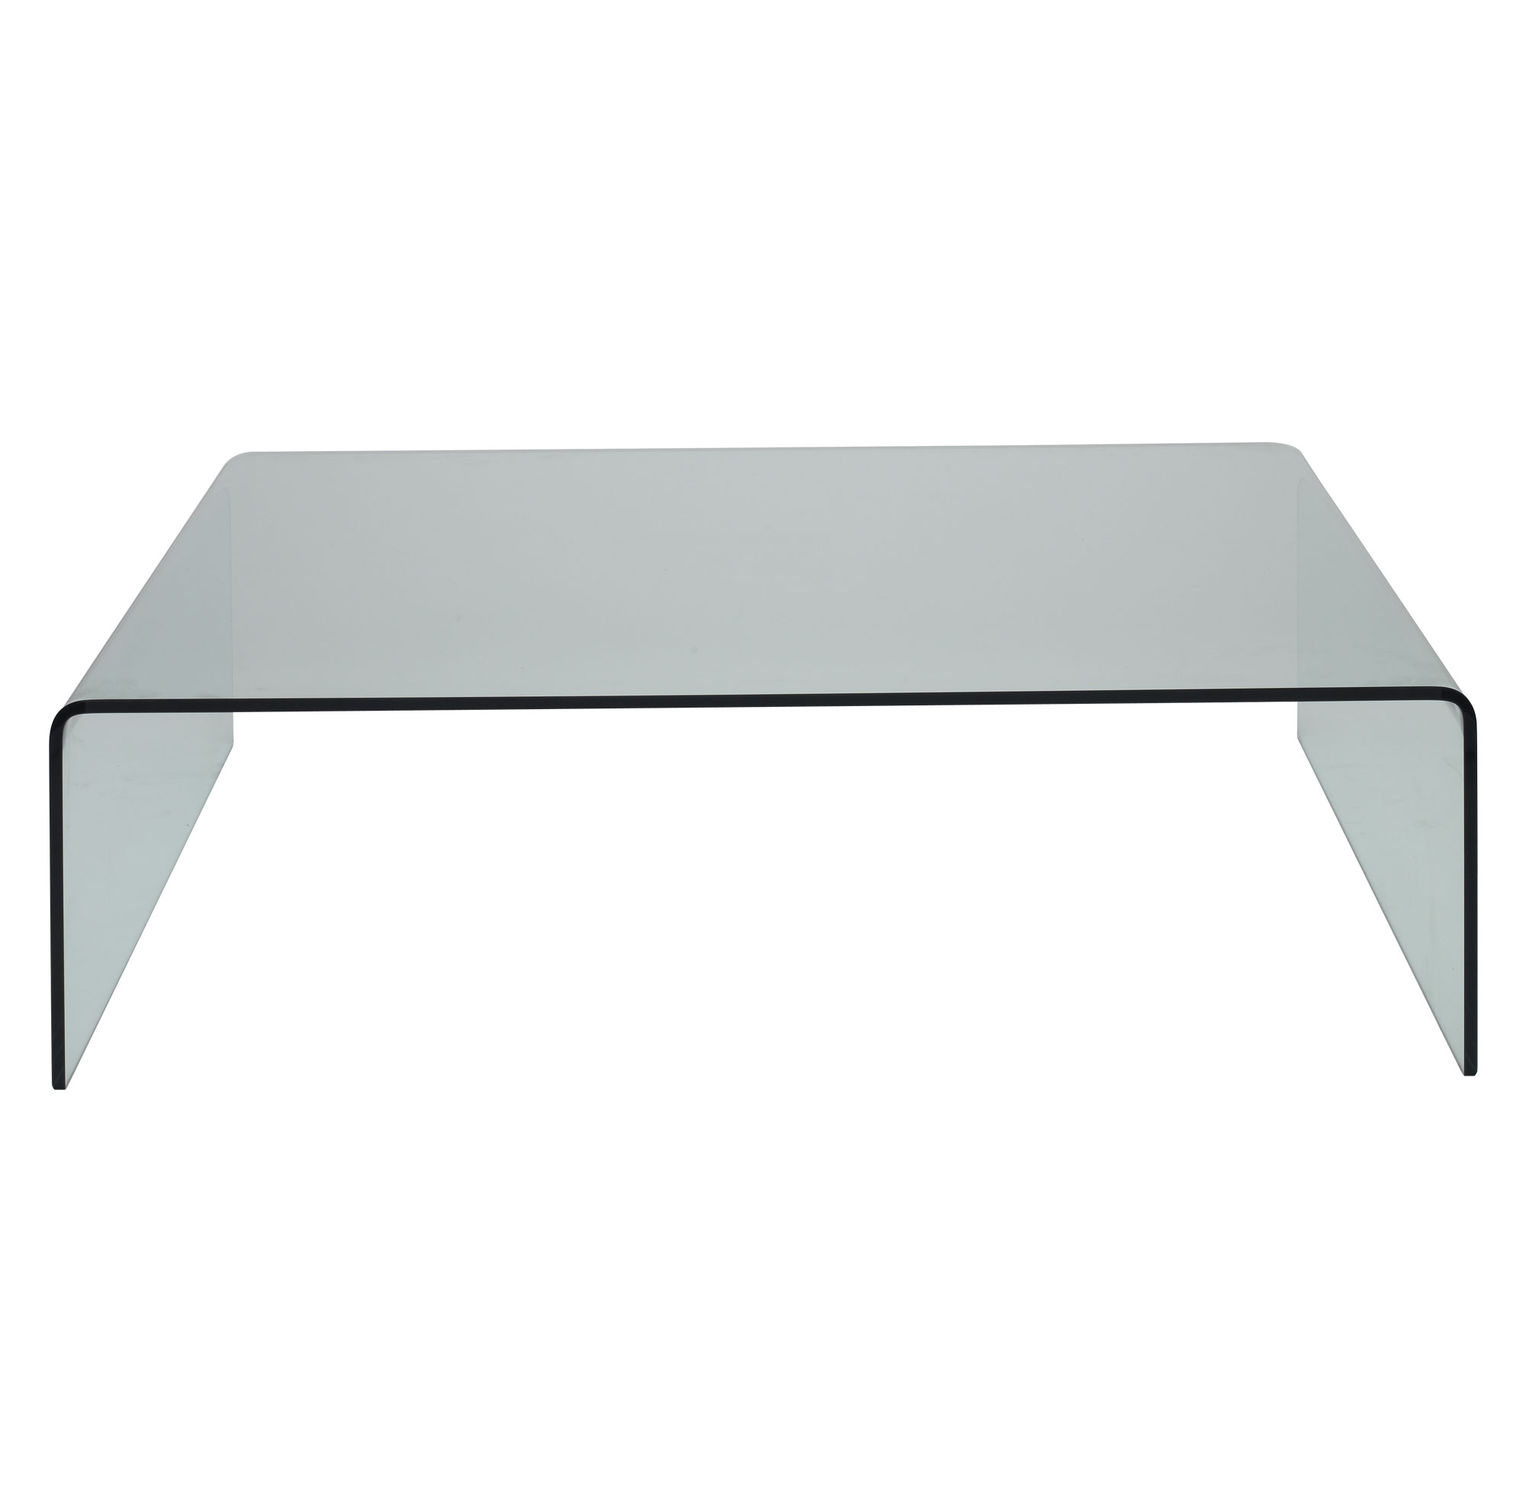 Contemporary coffee table glass oak square TISCH SitLand